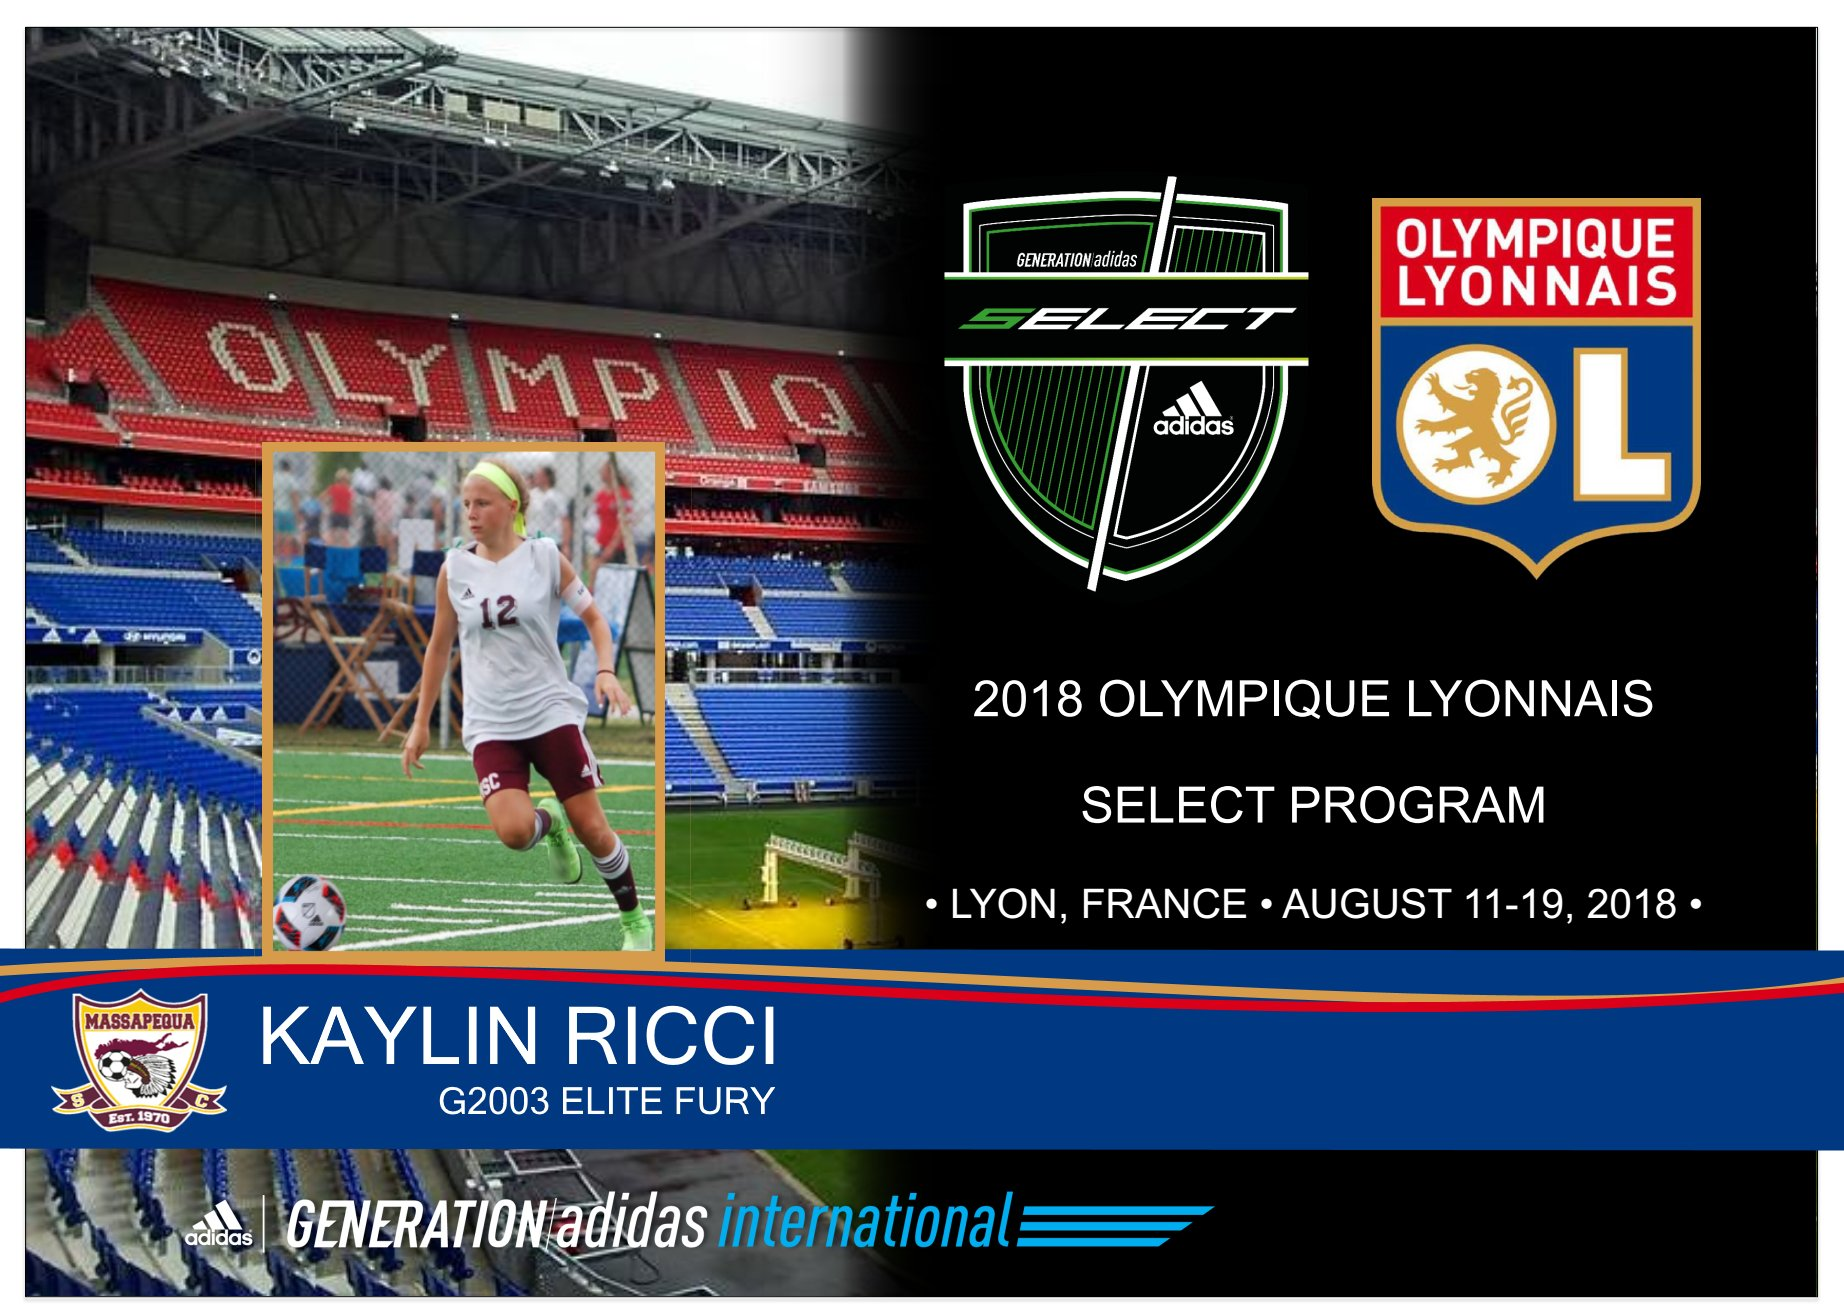 Kaylin Ricci joins Olympique Lyonnais as part of Generation Adidas Select Program!